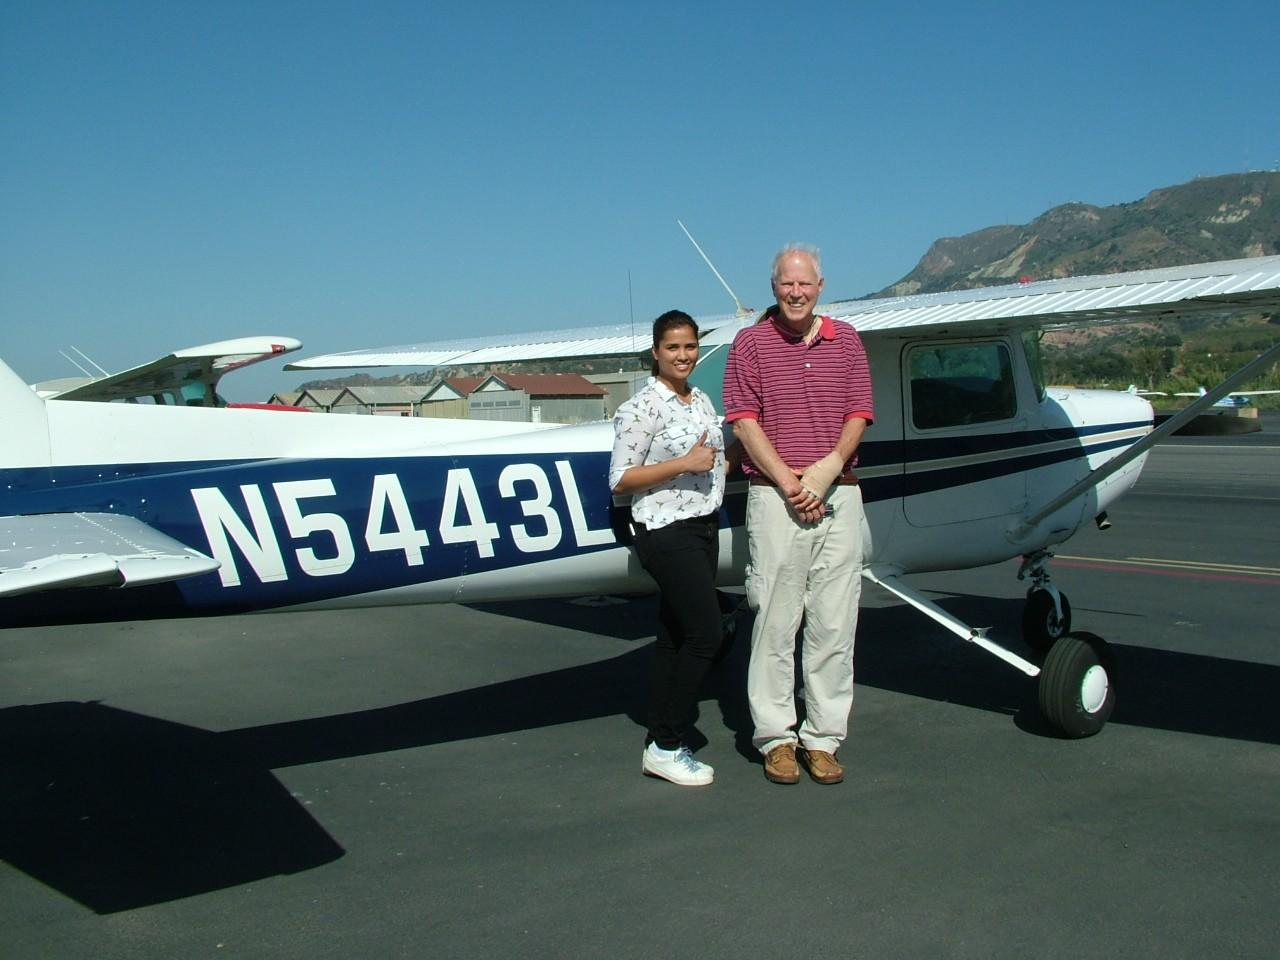 Ruth Charlesworth - Private Pilot